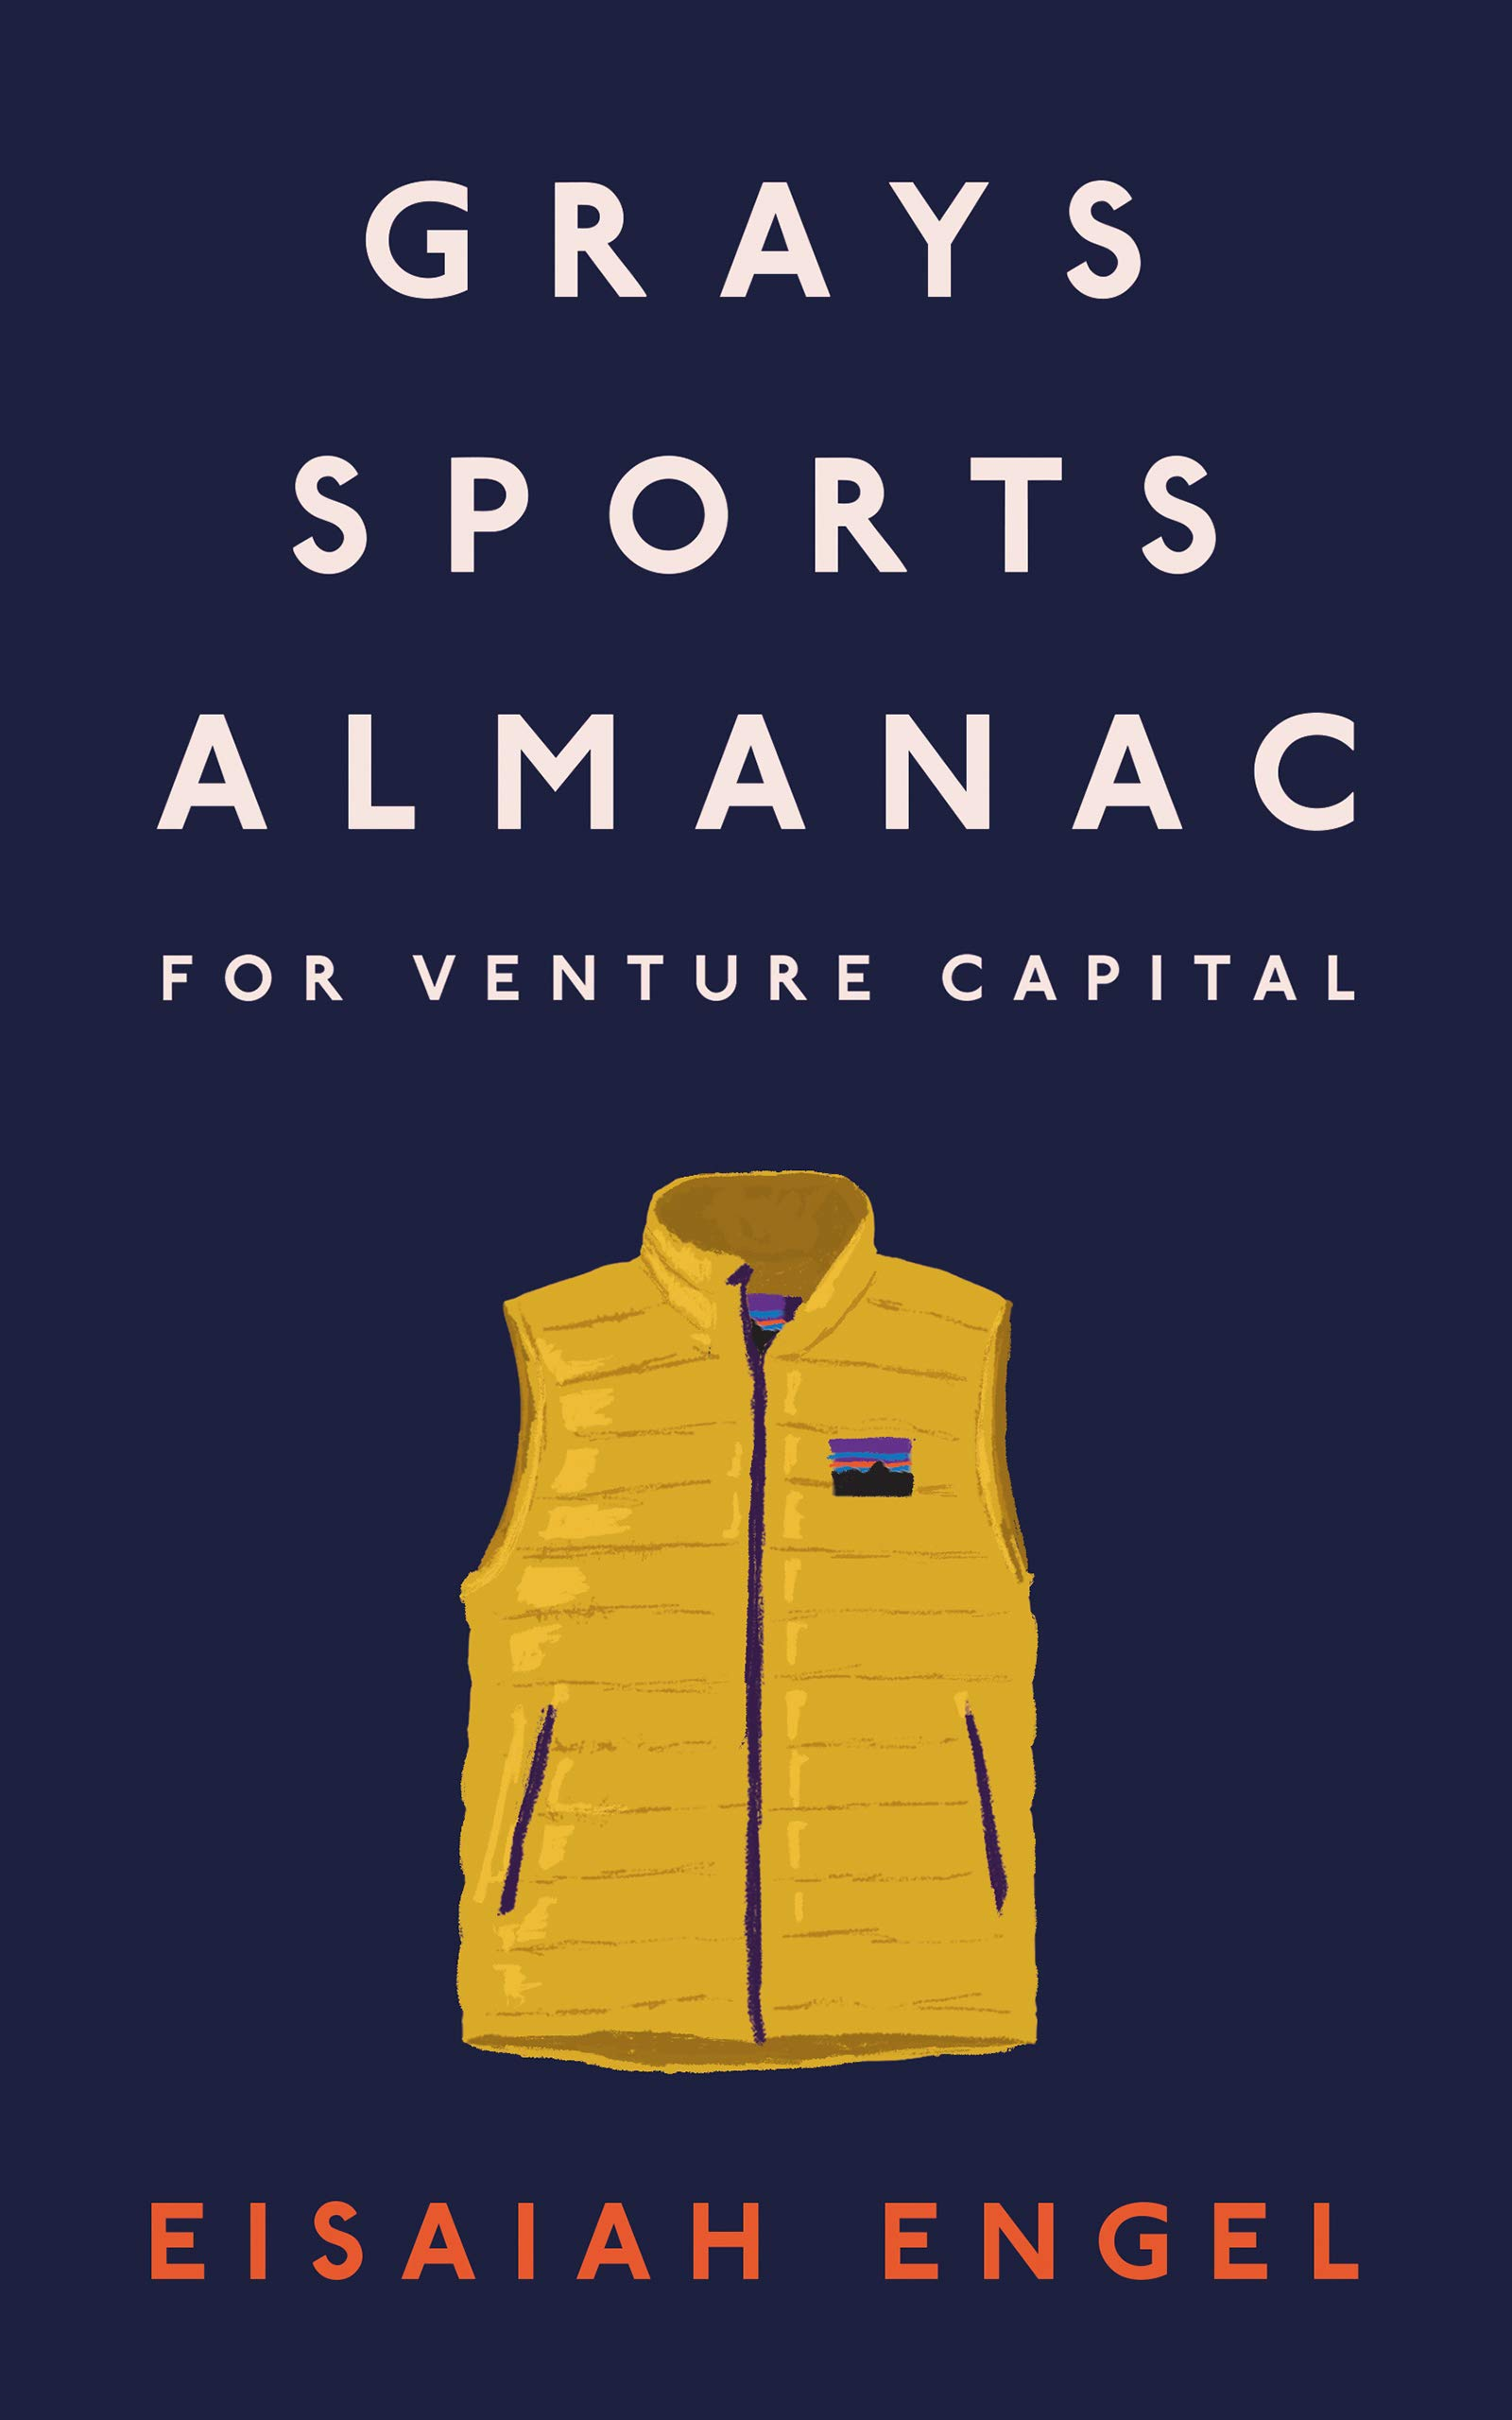 Grays Sports Almanac for Venture Capital: A new standard for optionality to beat the odds